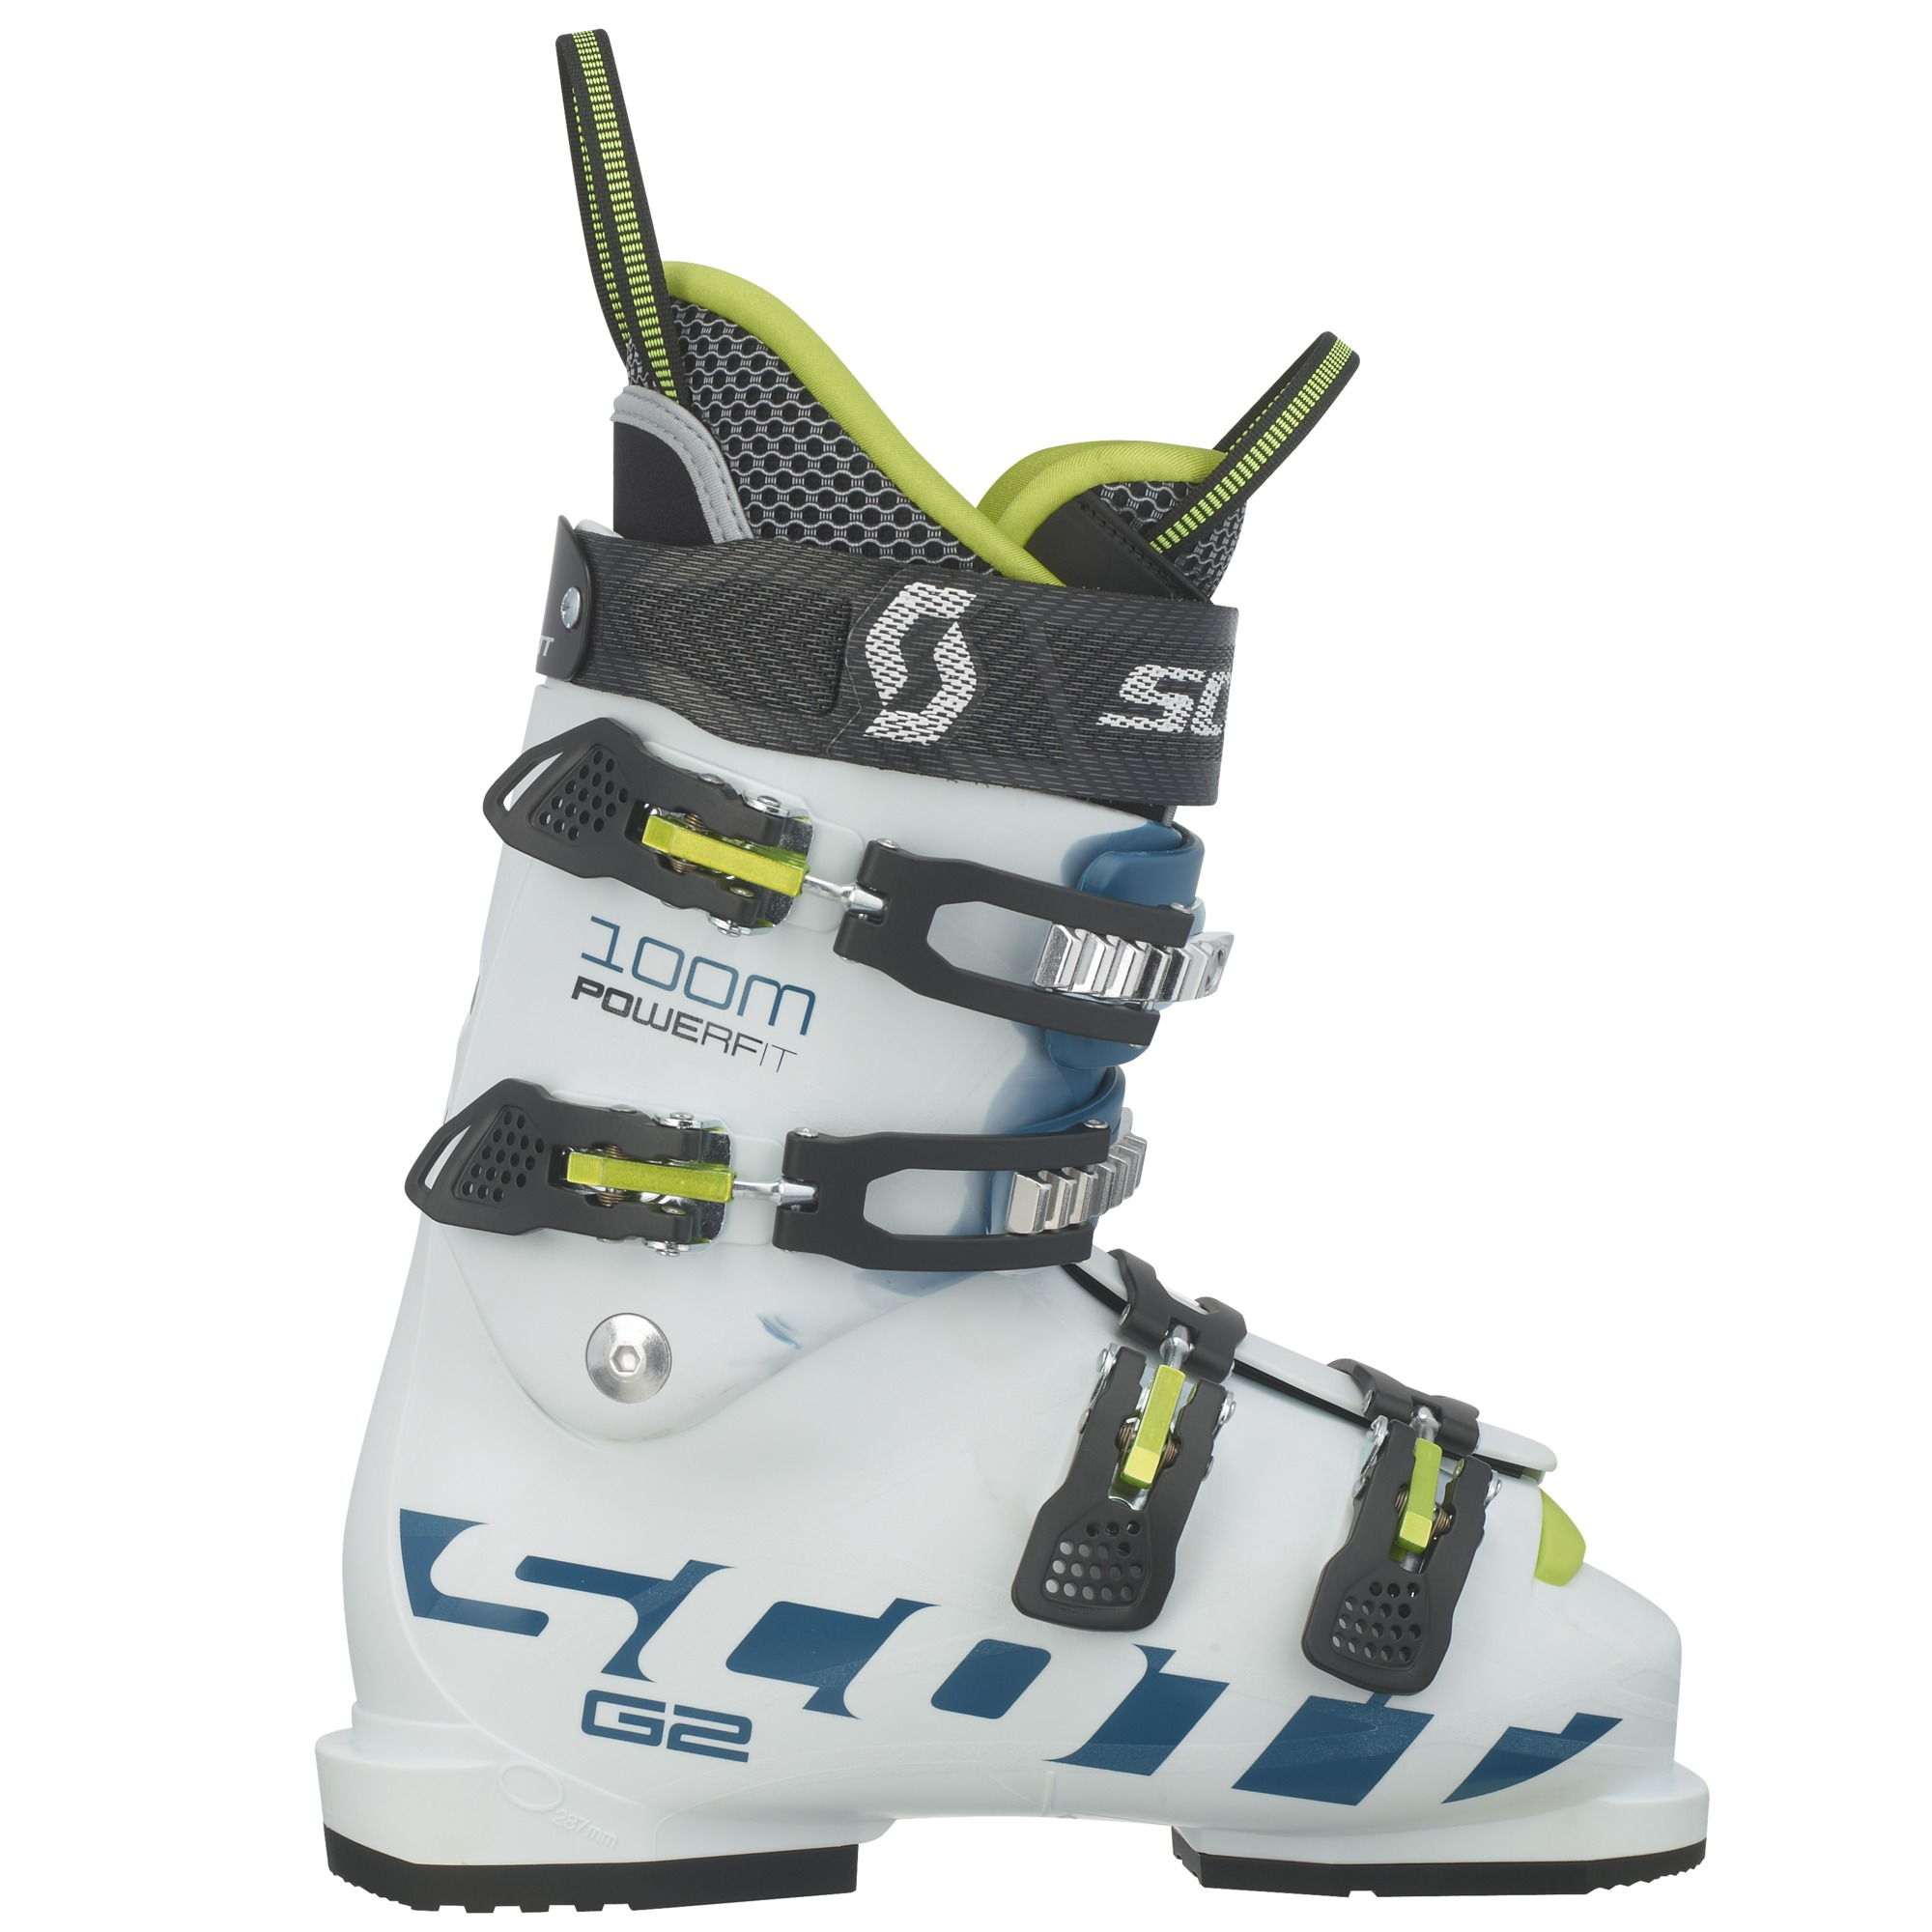 SCOTT G2 100 Powerfit M Ski Boot